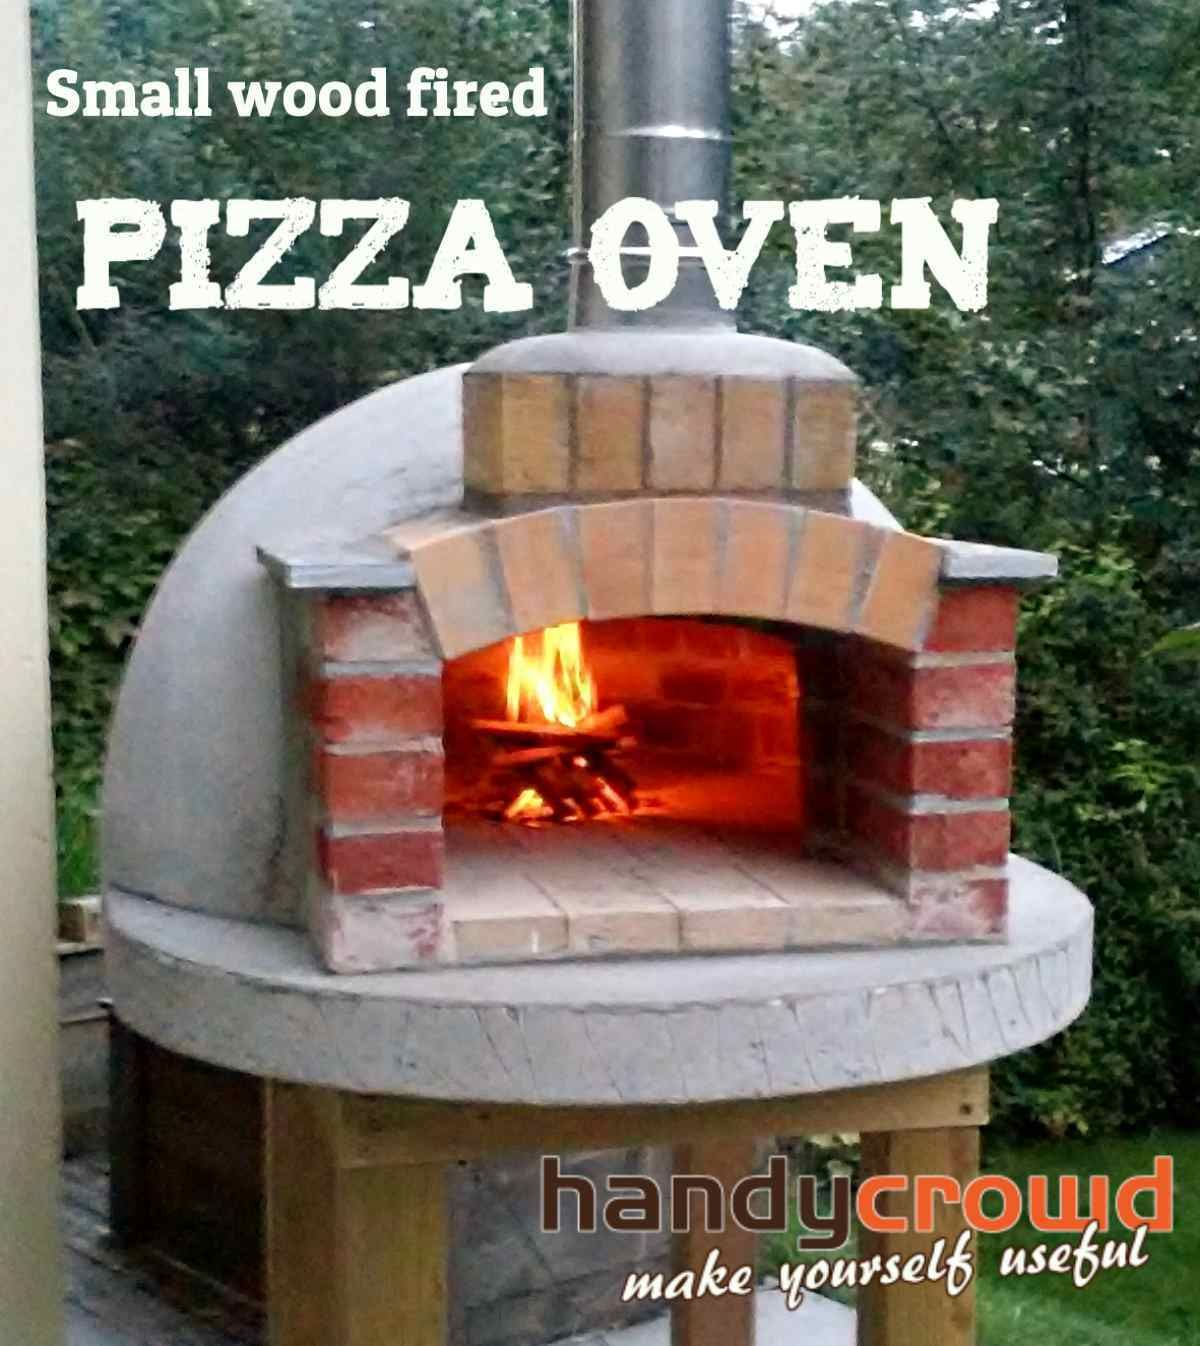 Small wood fired pizza oven pizza ovens pinterest wood fired